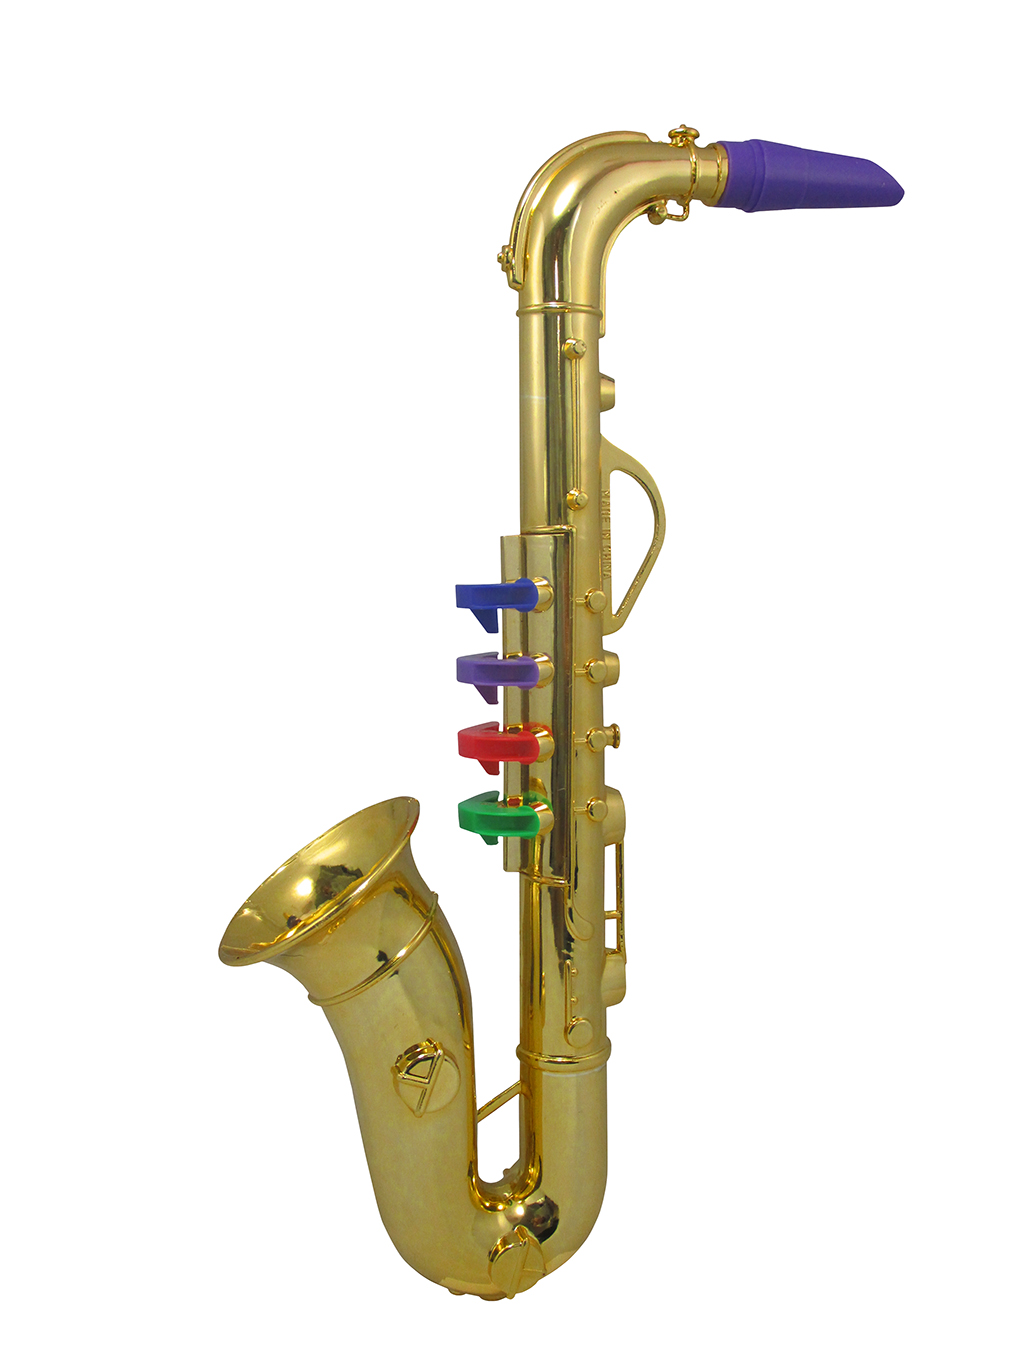 Childrens-Musical-Toy-Saxophone-Real-Sound-4-Keys-Easy-Learning-Gold-Silver-Prop thumbnail 3